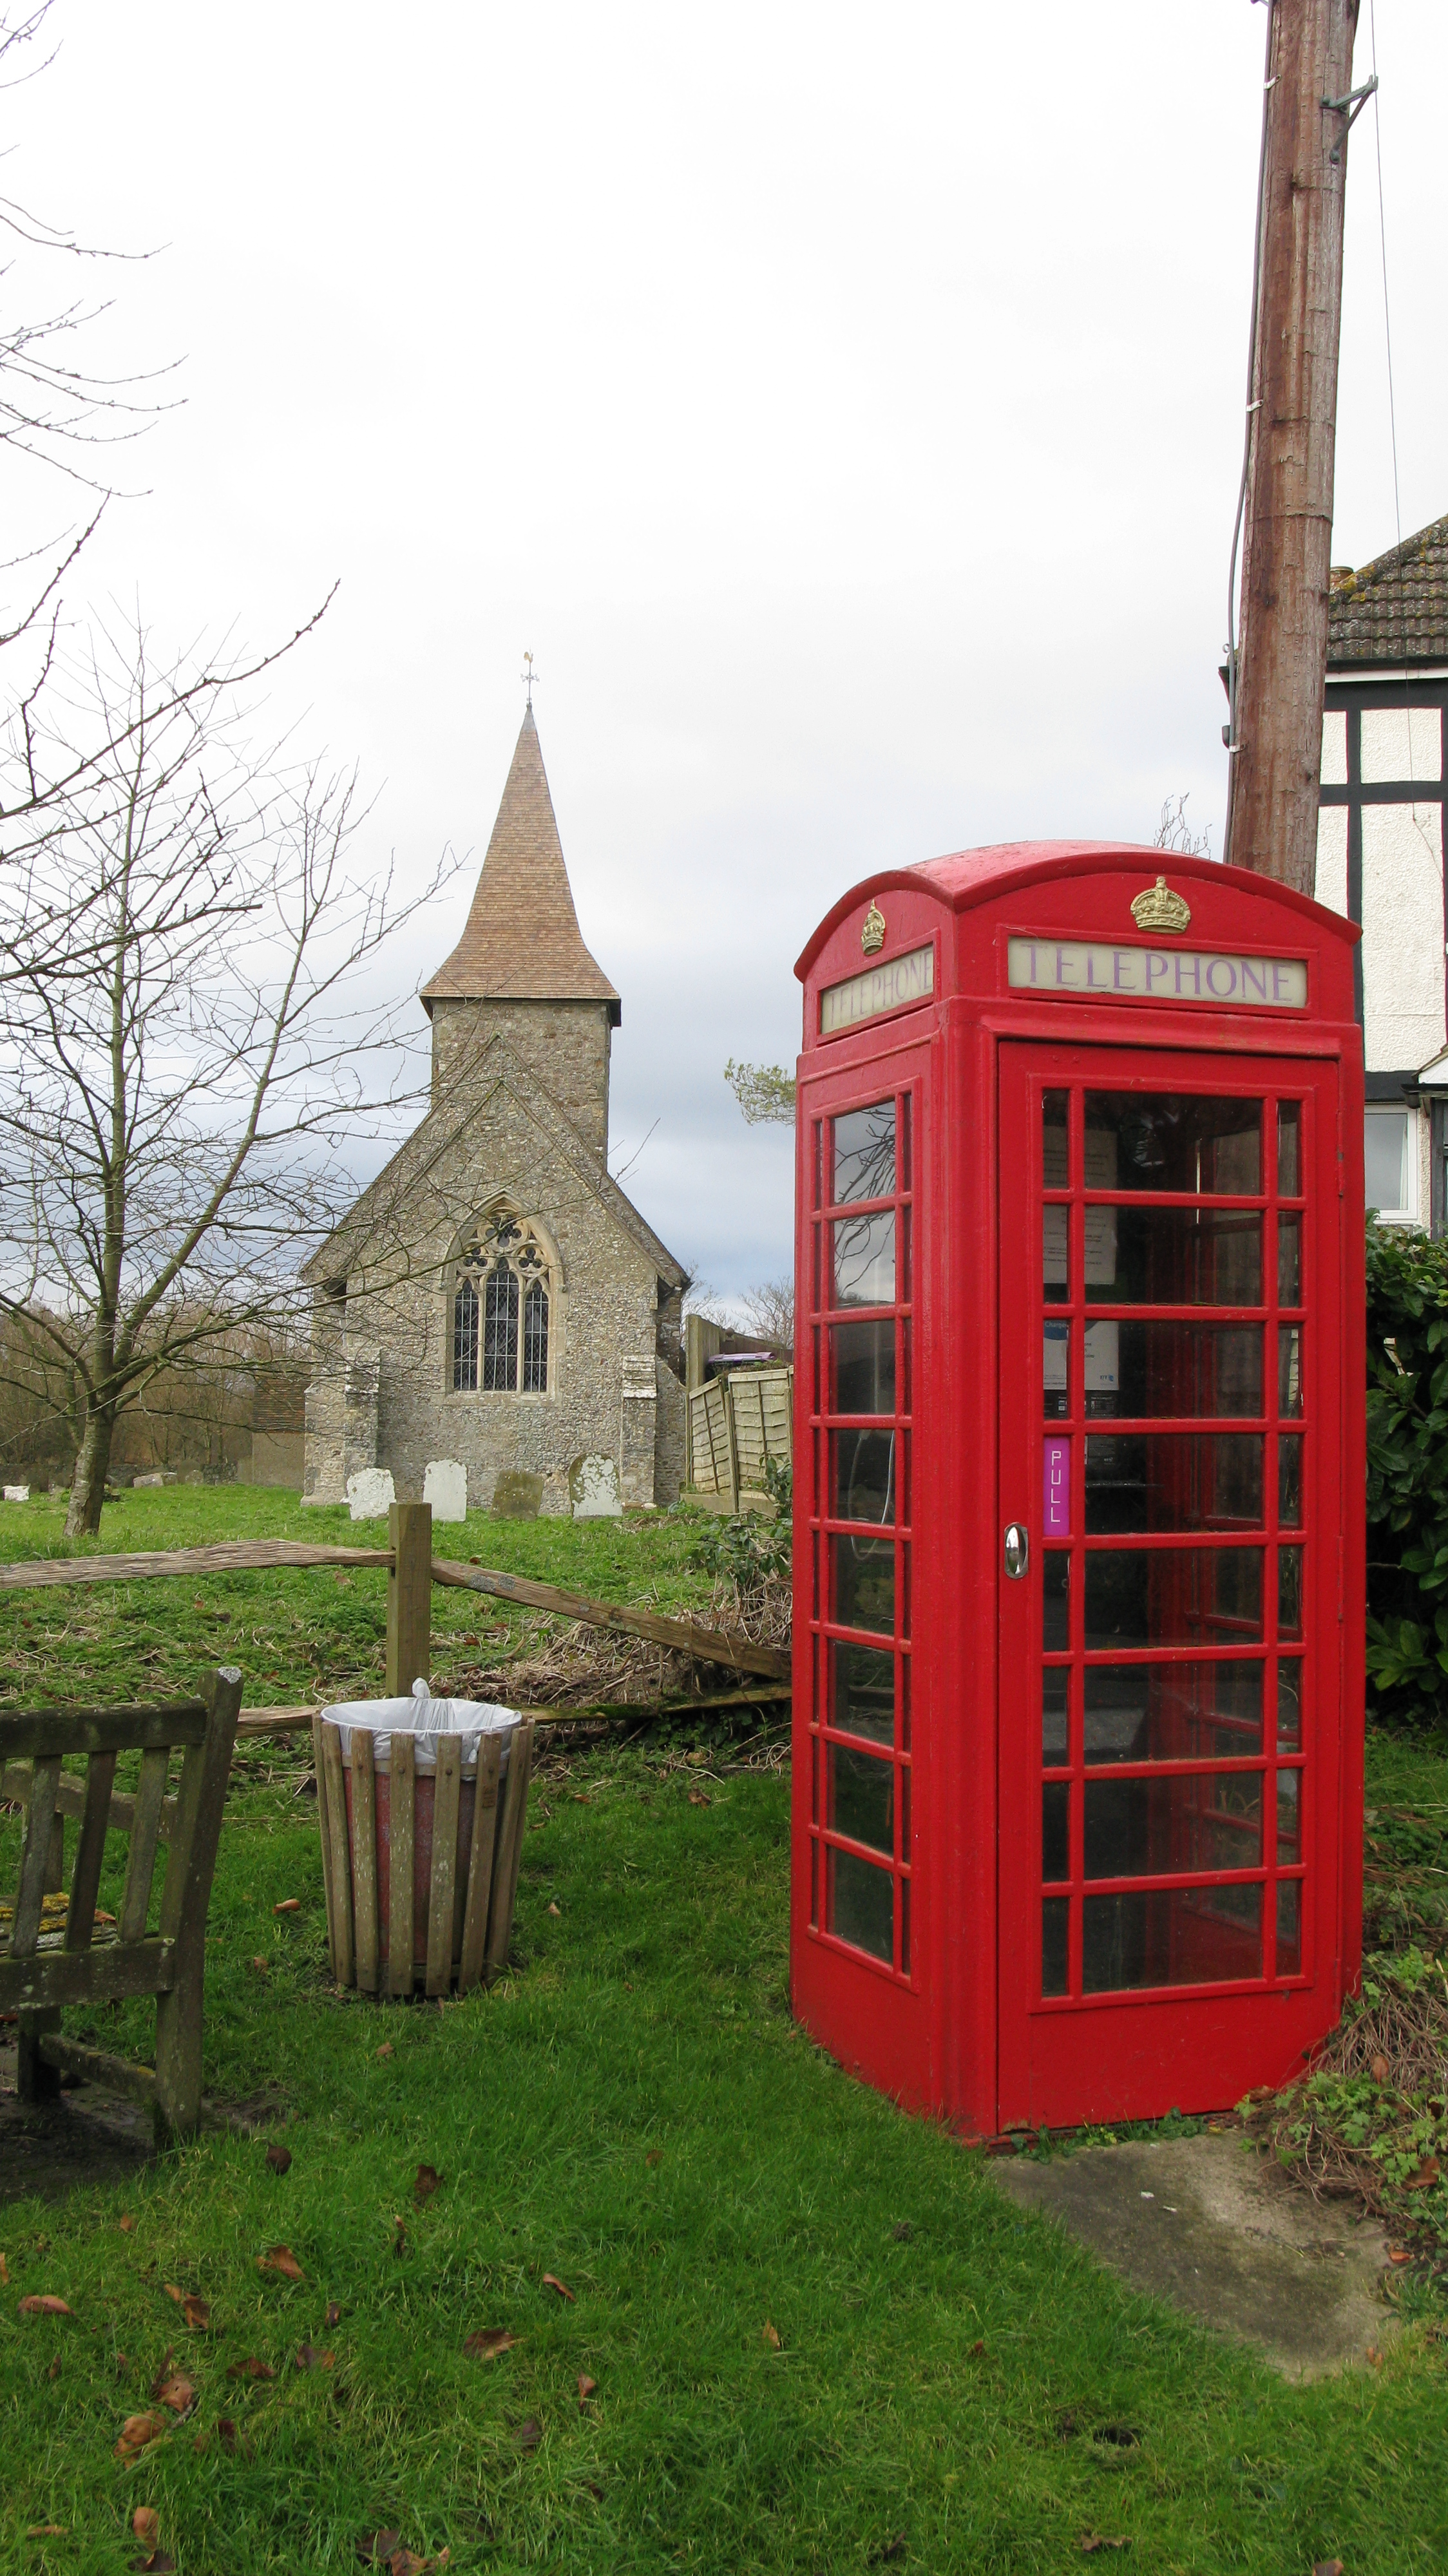 K6 kiosk in front of the Saxon church of St. Mary and St. Radigund. North Downs Way